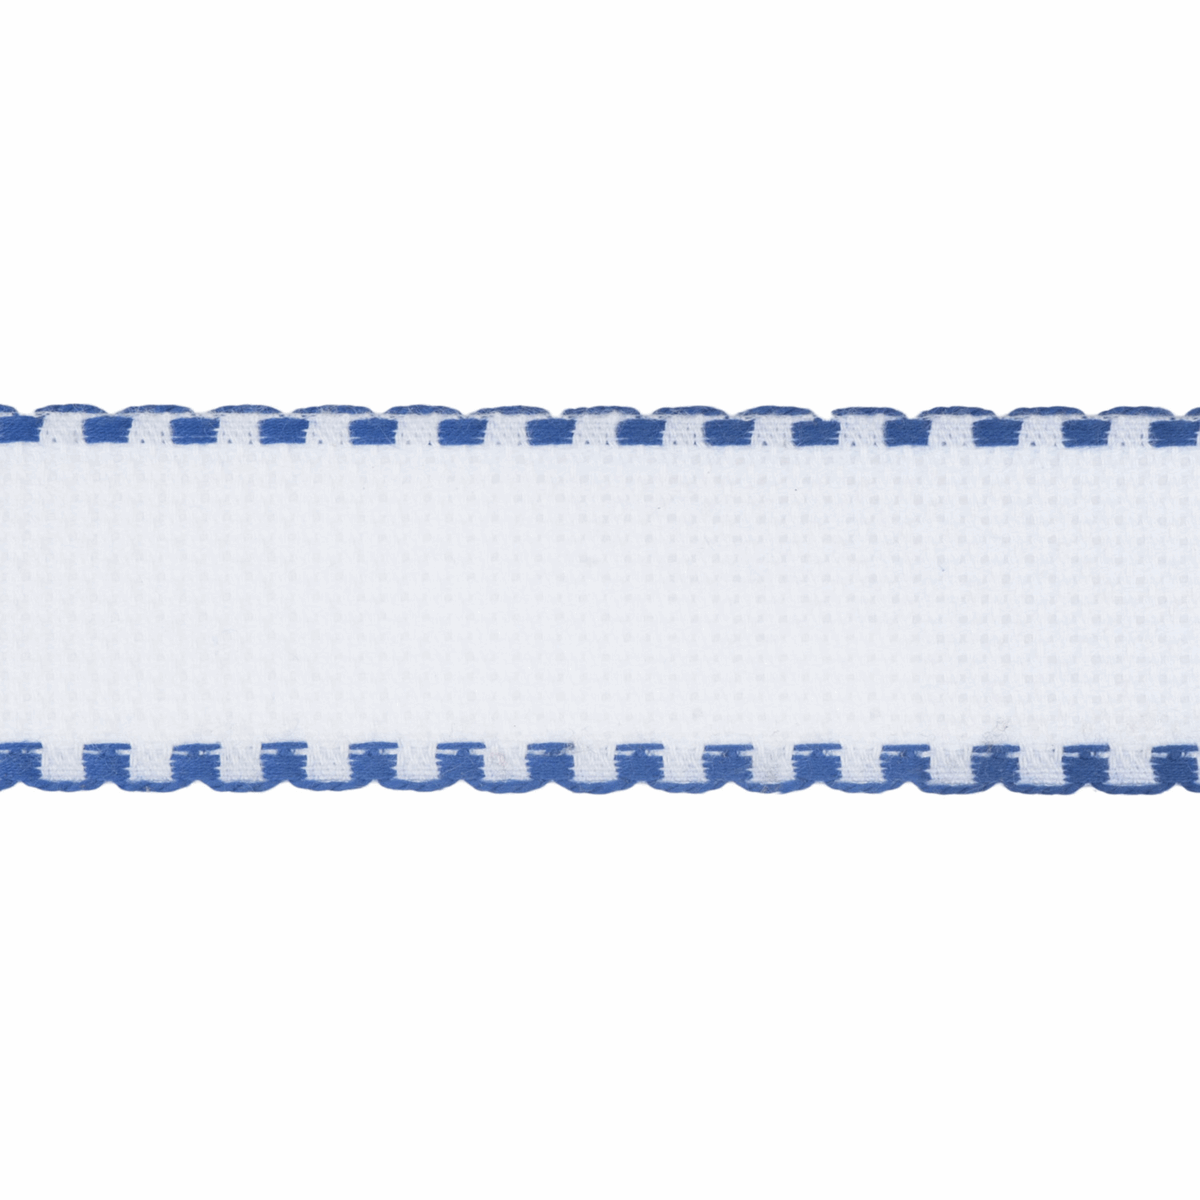 Picture of Needlecraft Fabric: Aida Band: 16 Count: 8m x 30mm: White/Royal Blue Edging